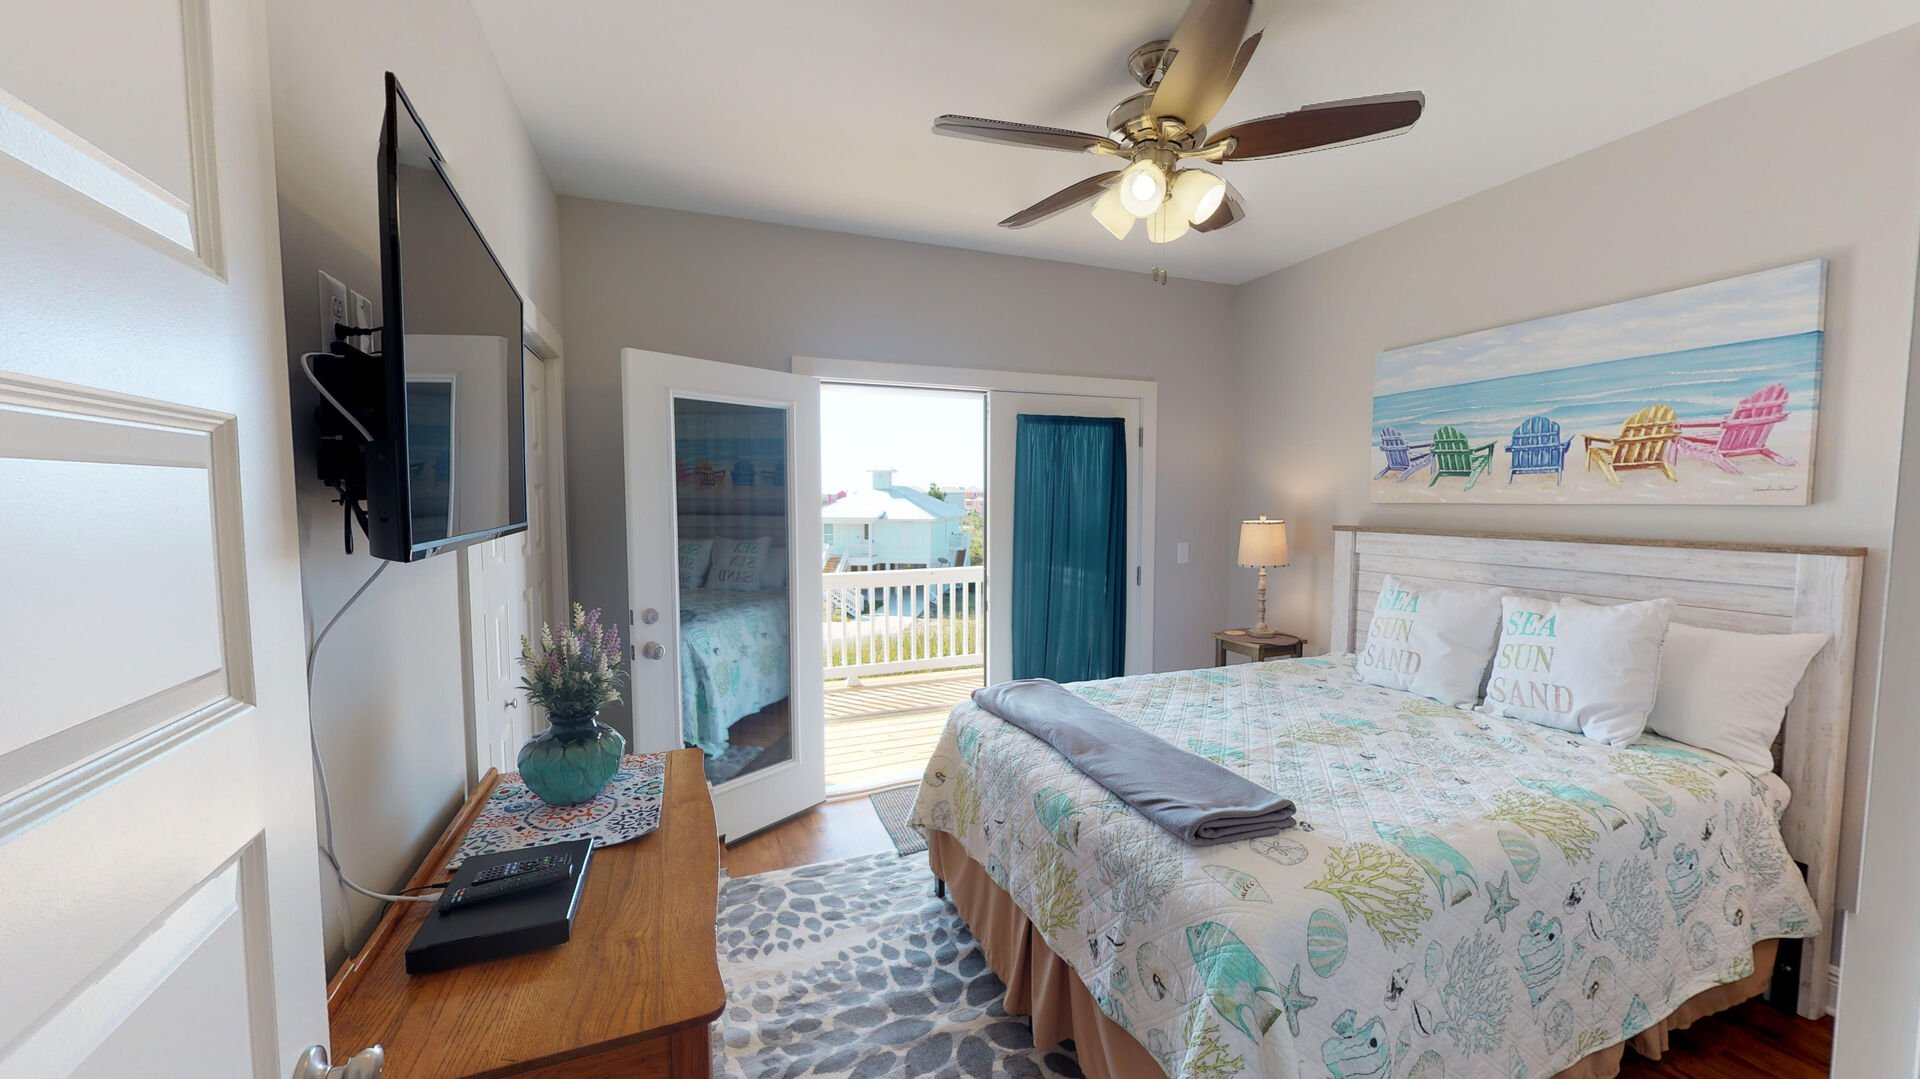 Bedroom with Large Bed, Buffet Console, TV, Ceiling Fan, and Door to the Balcony.